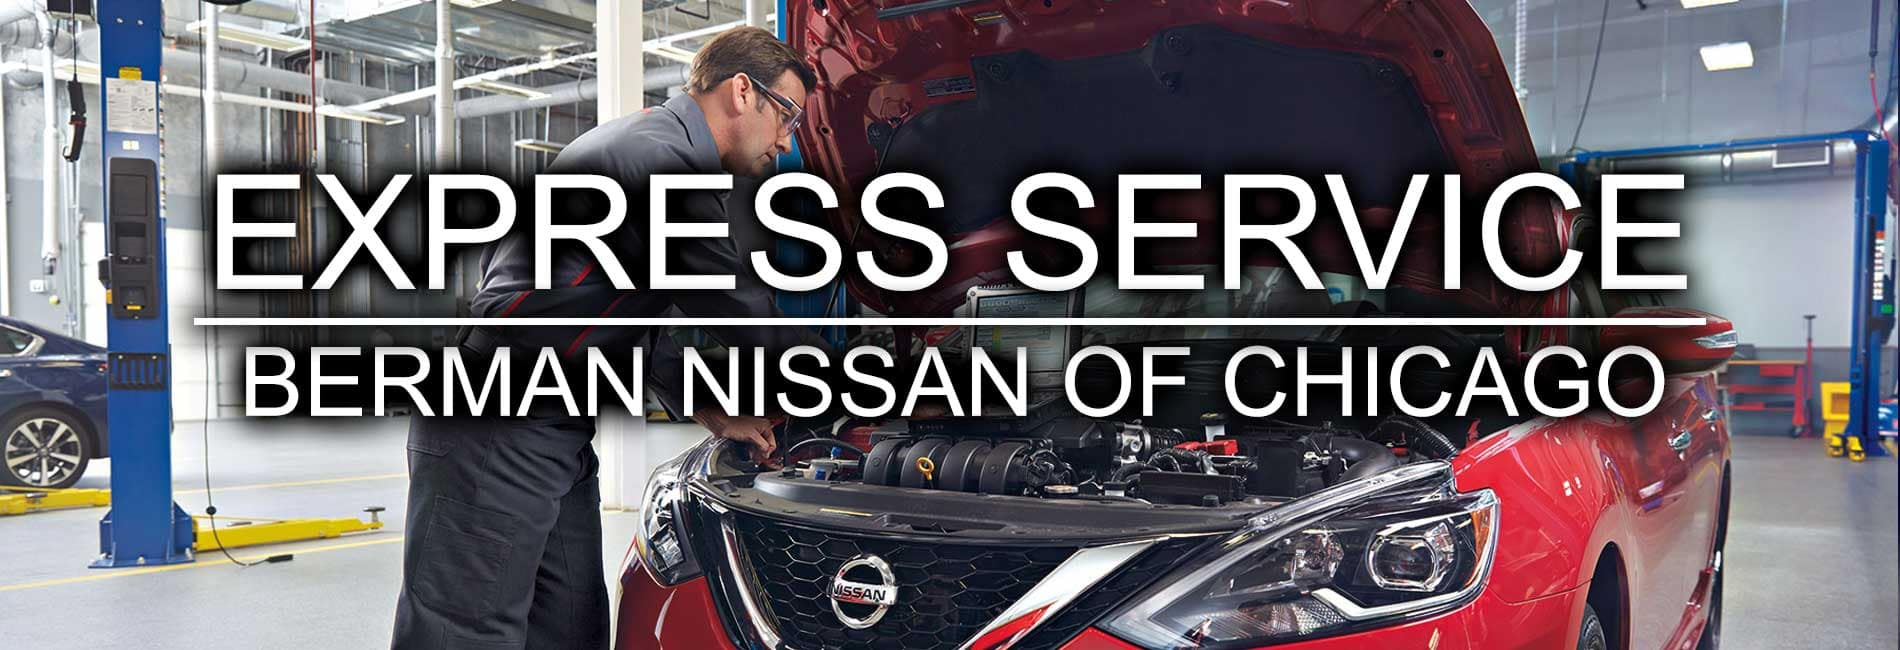 Express Service at Berman Nissan of Chicago